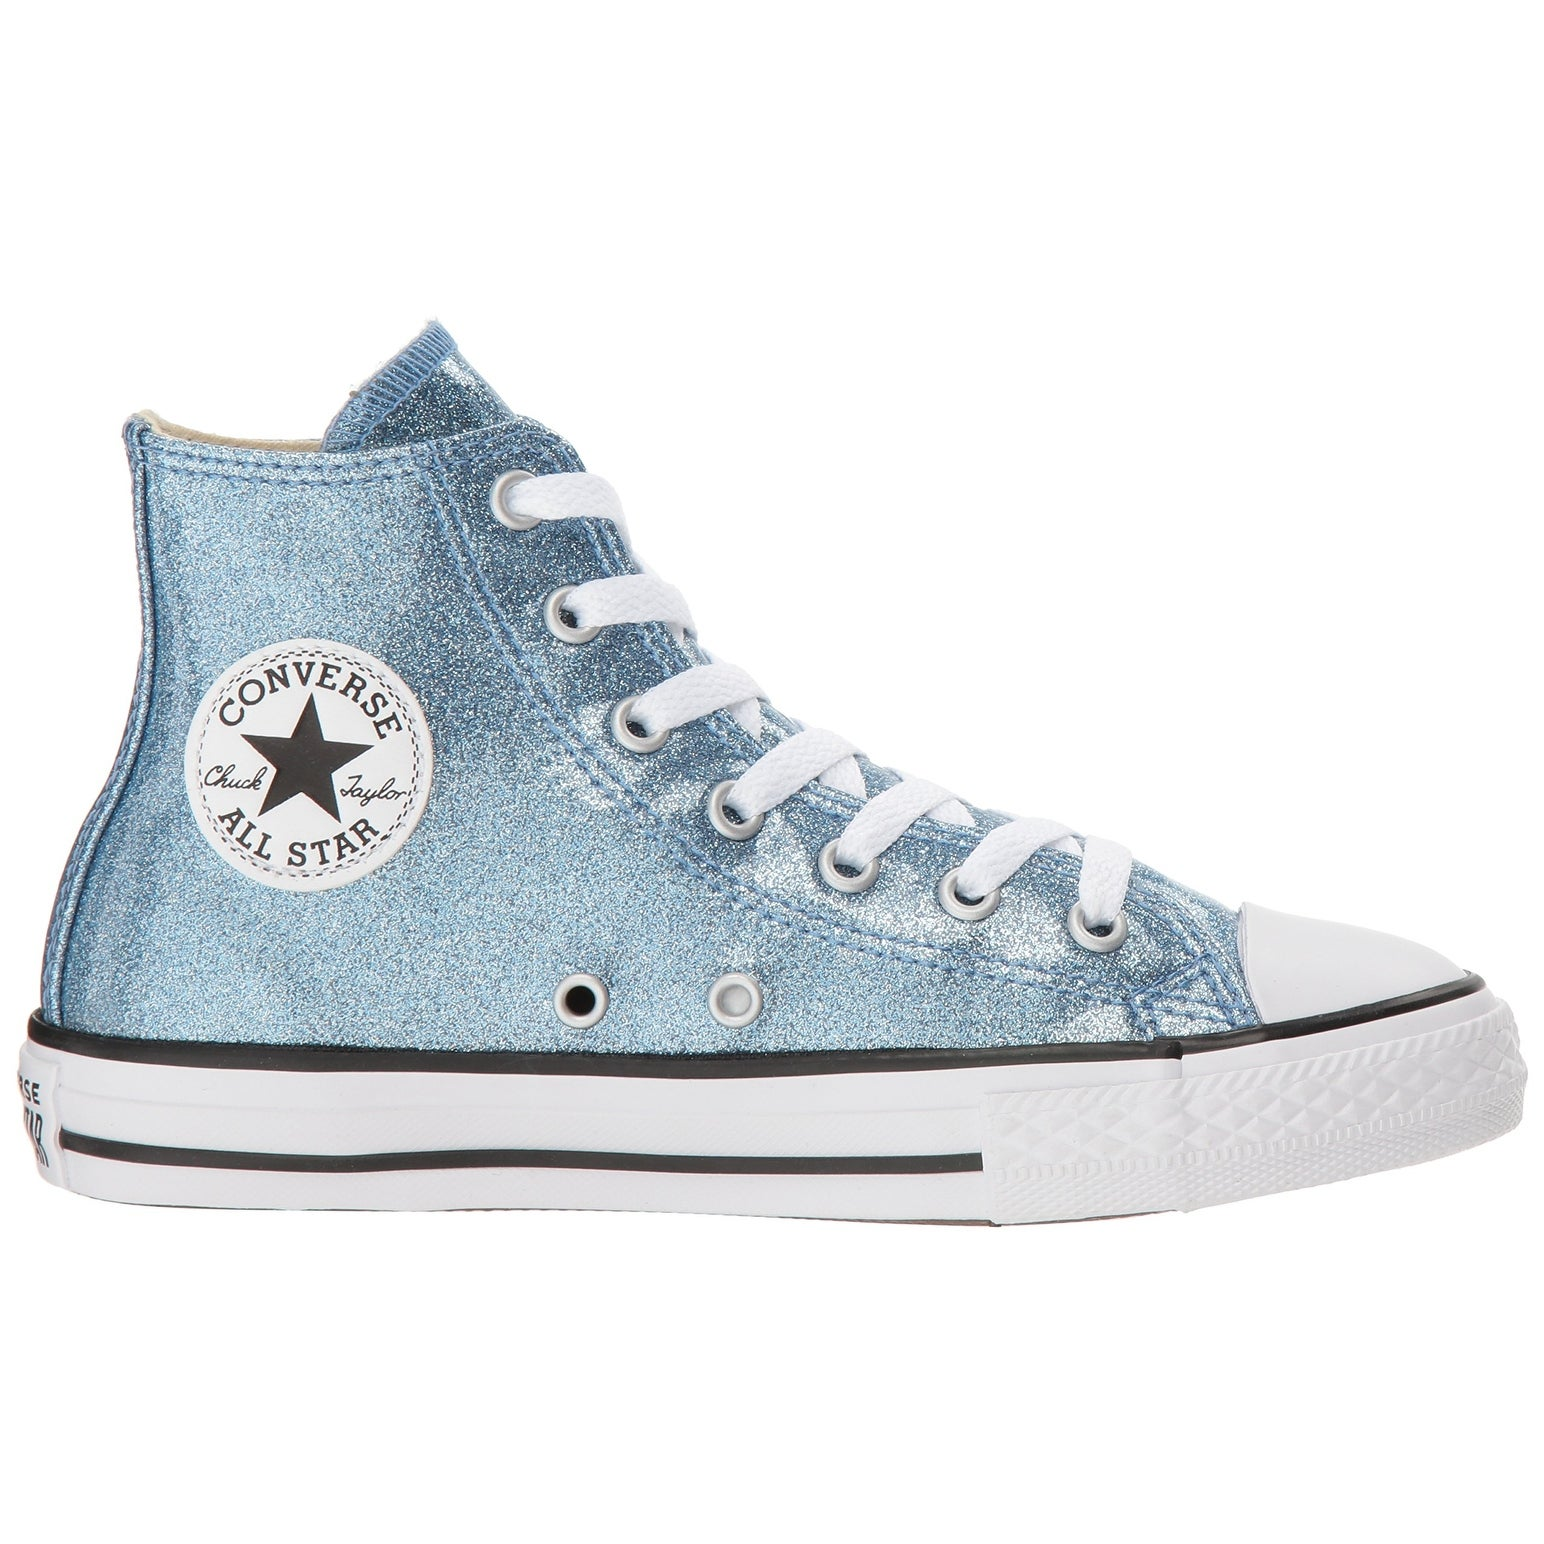 9e071e7c96e Shop Kids Converse Girls Chuck Taylor All Star High Top Hight Top Lace Up  Fashion ... - Free Shipping On Orders Over $45 - Overstock - 26056630